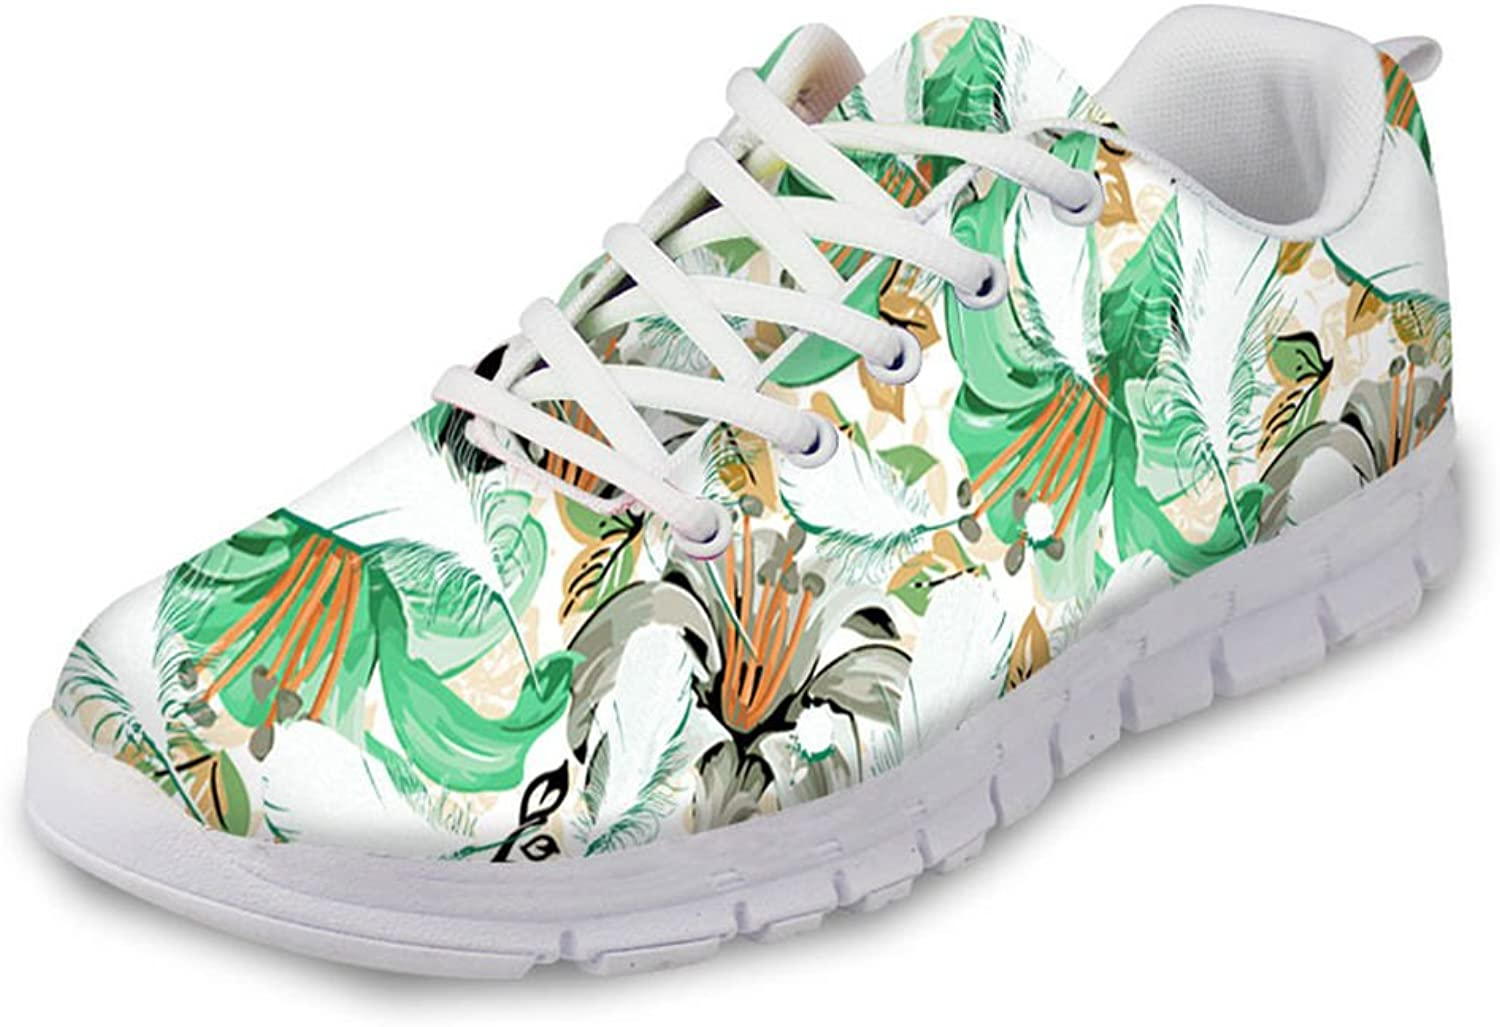 Advocator 3D Flowers Printed Cute Girly Running shoes Travel Athletic Mesh Walking Sneakers for Women